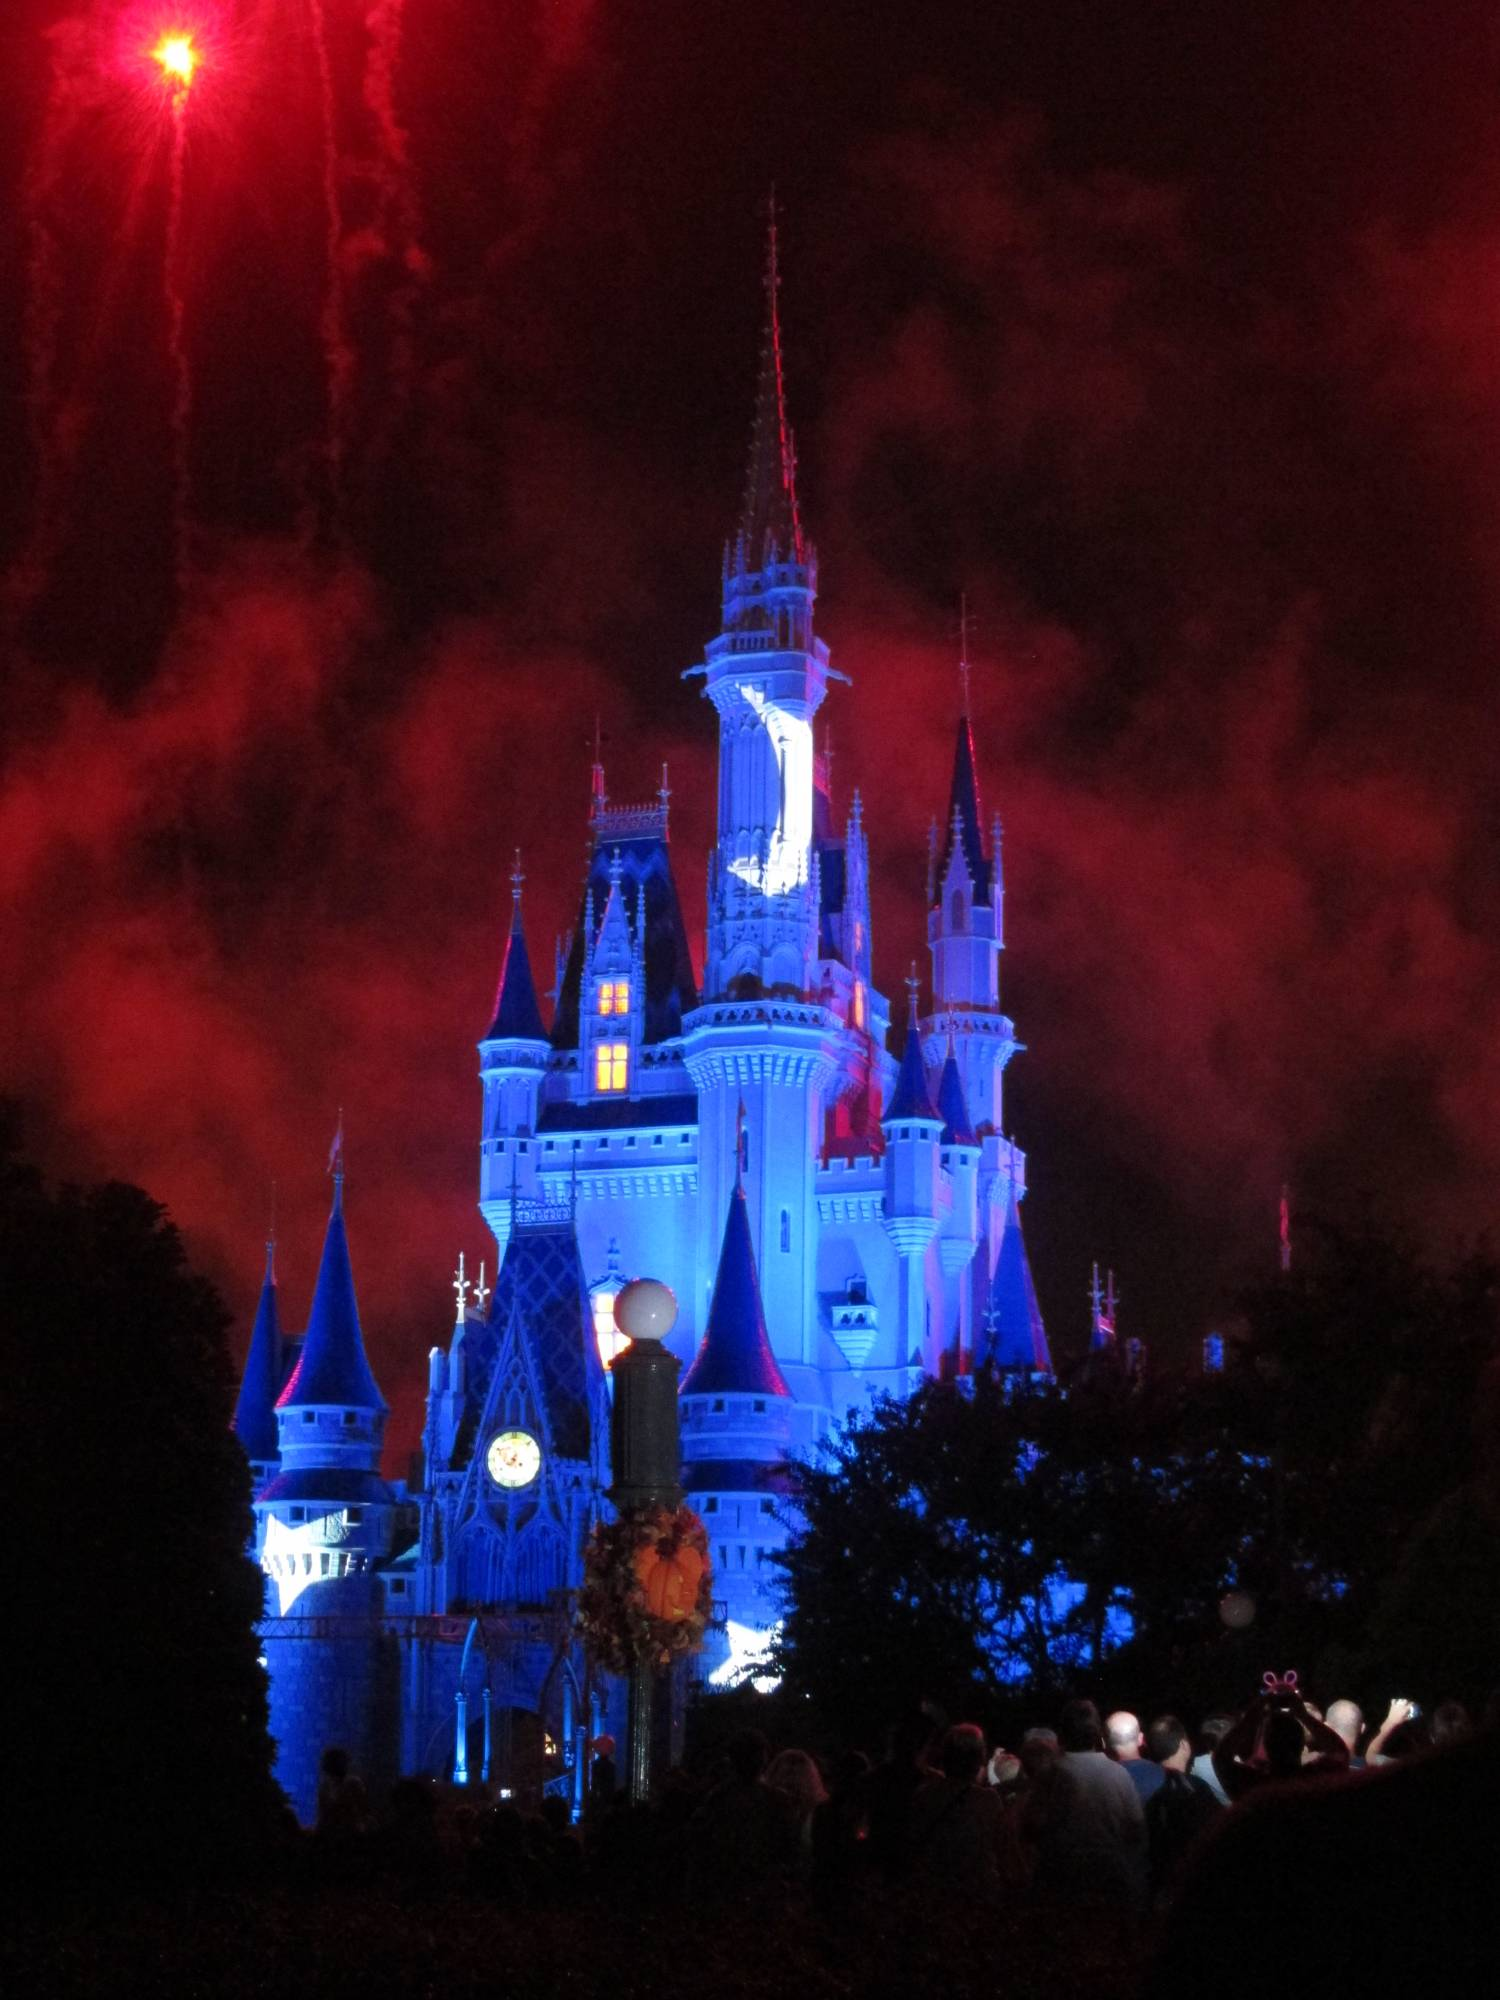 Wishes Fireworks Viewing Suggestions | PassPorter.com